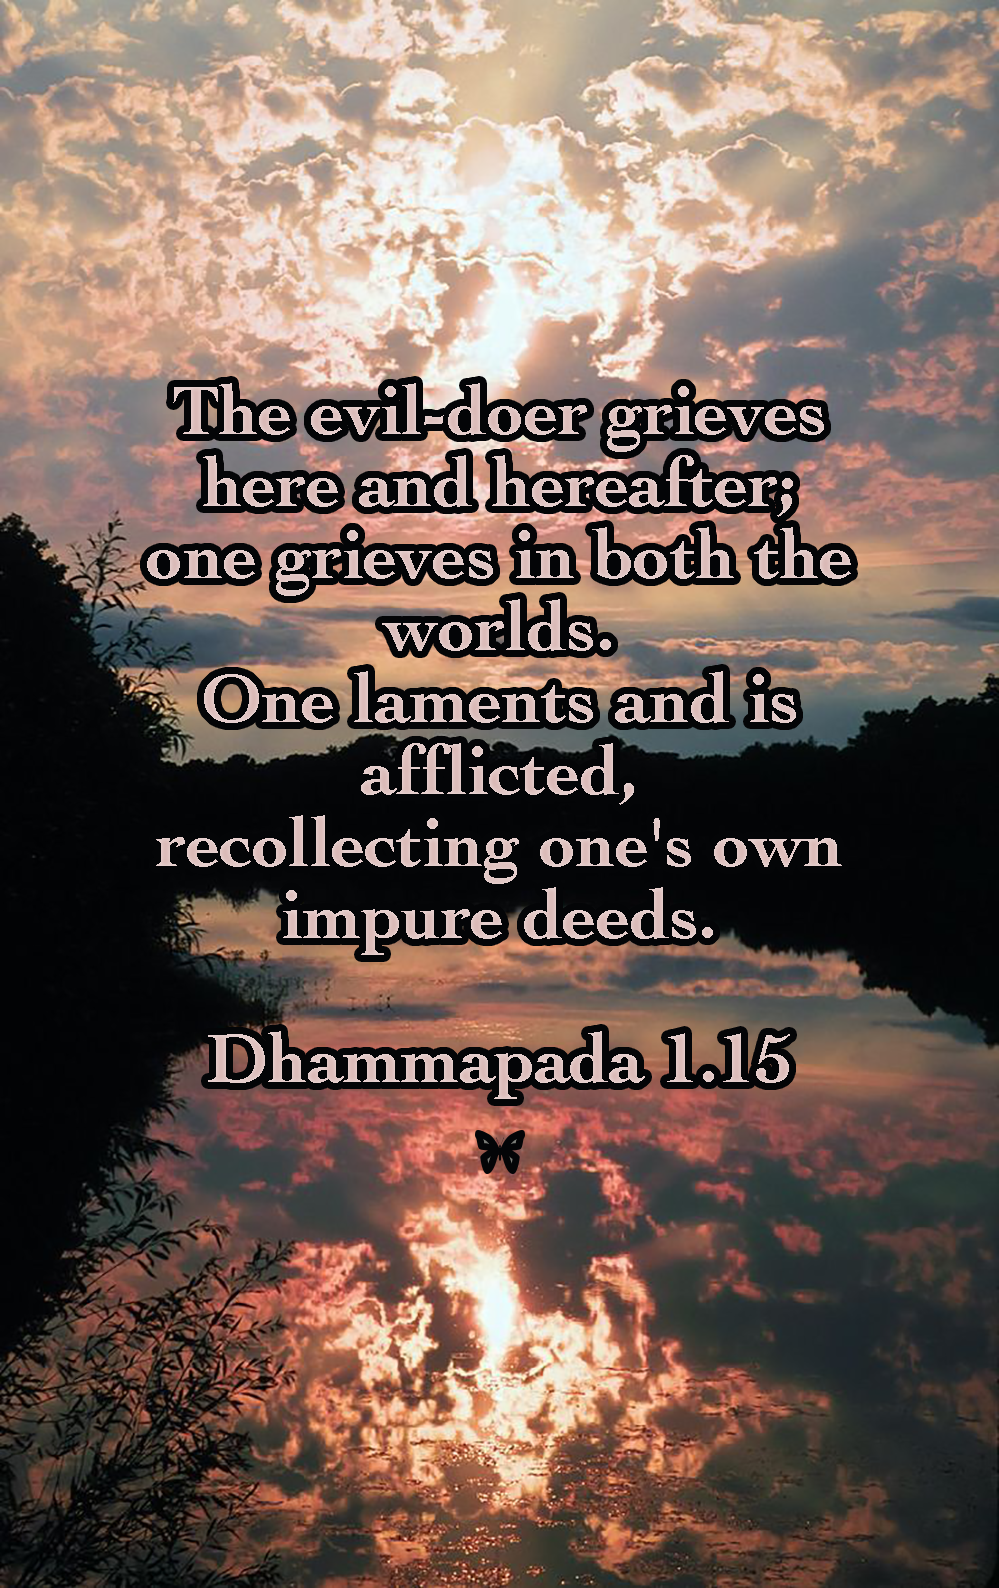 The evil-doer grieves here and hereafter; one grieves in both the worlds. One laments and is afflicted, recollecting one's own impure deeds.  Dhammapada 1.15